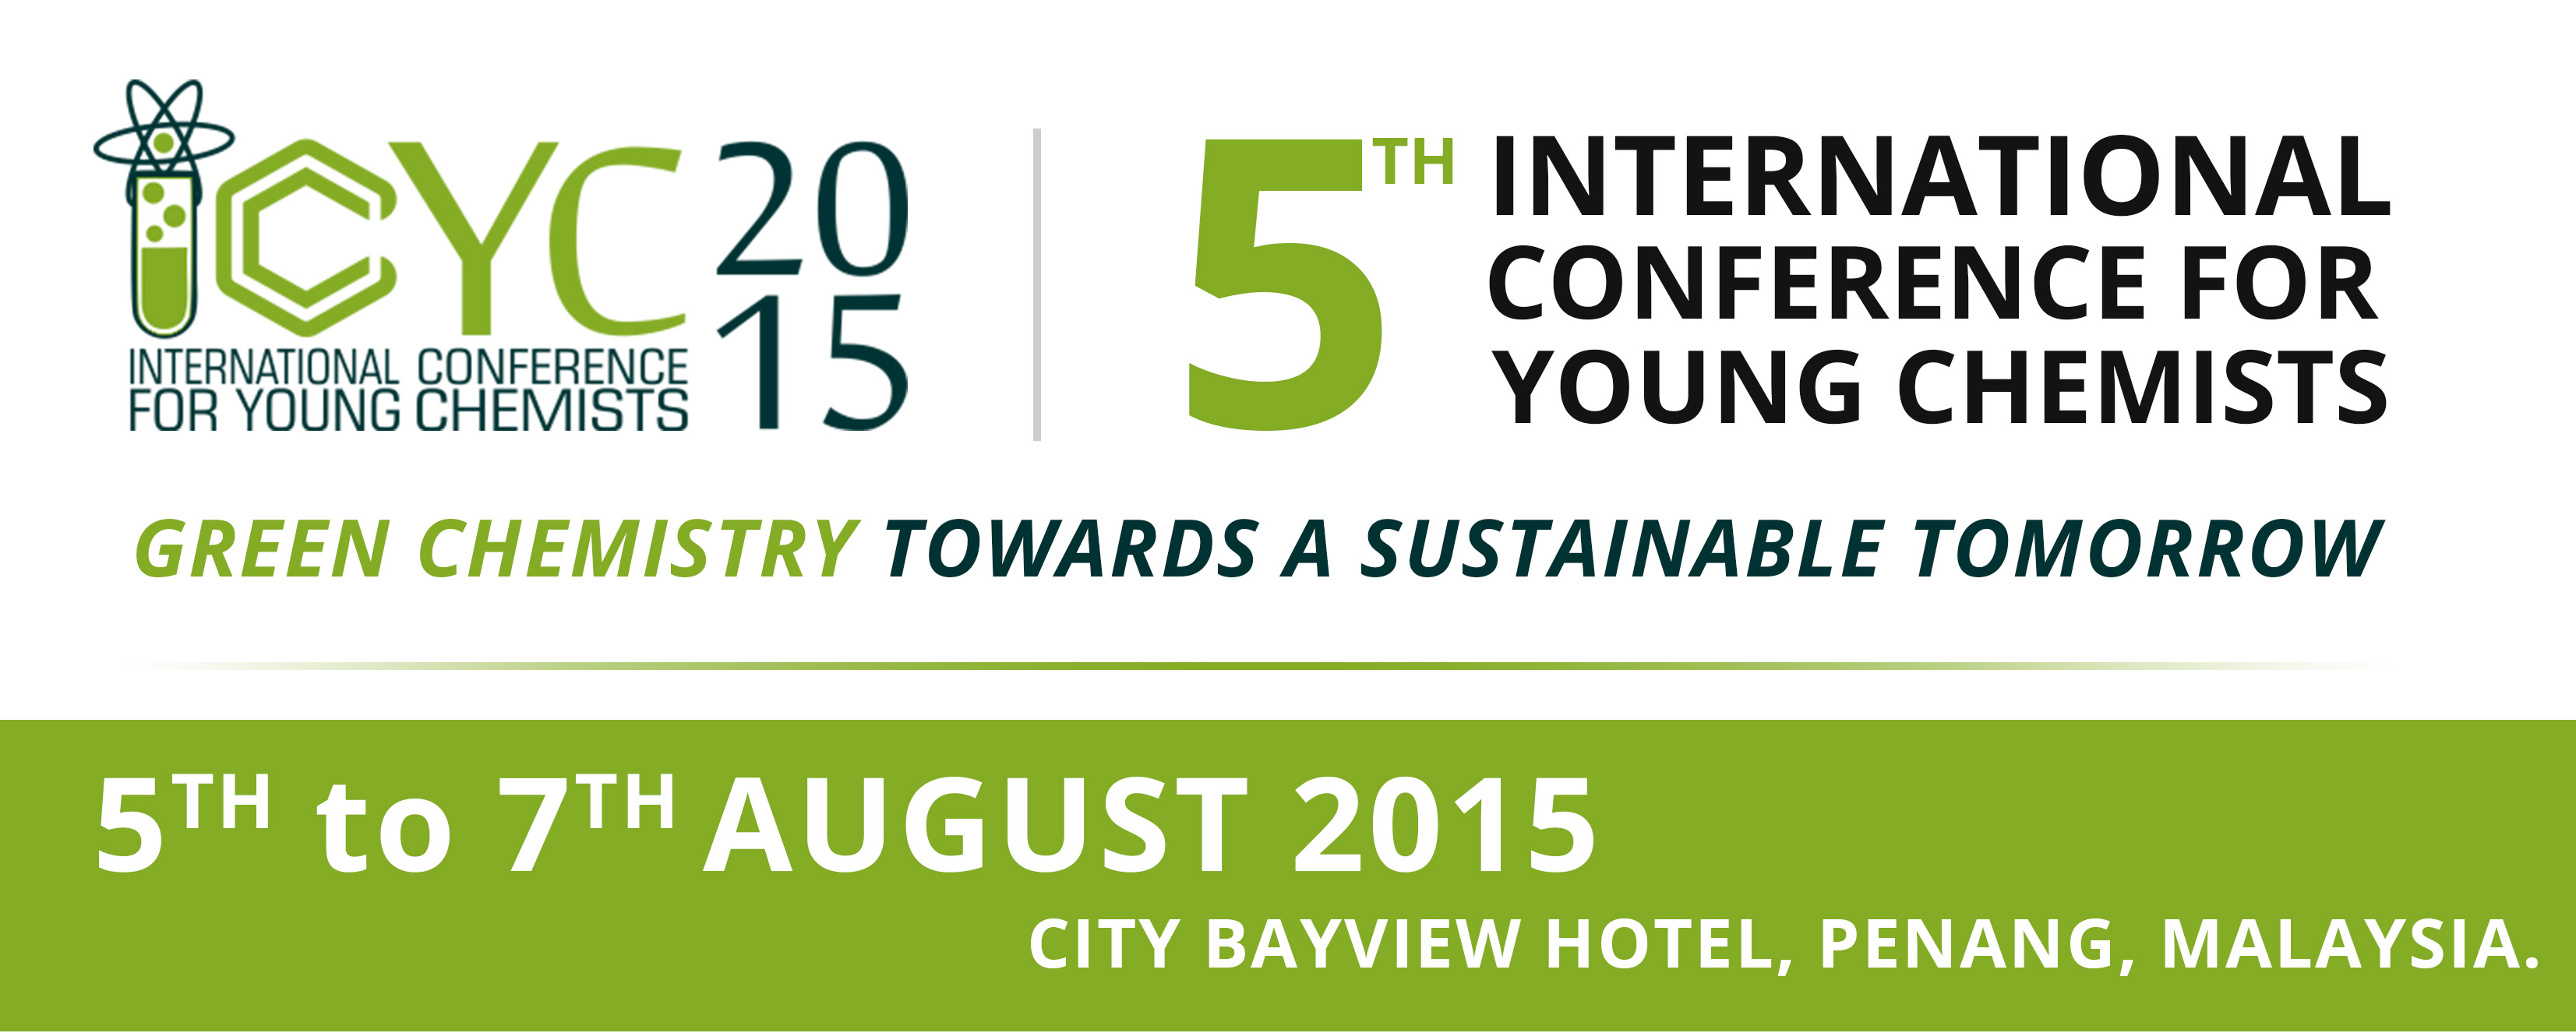 Conference: International Conference for Young Chemists (ICYC) 2015, Malaysia